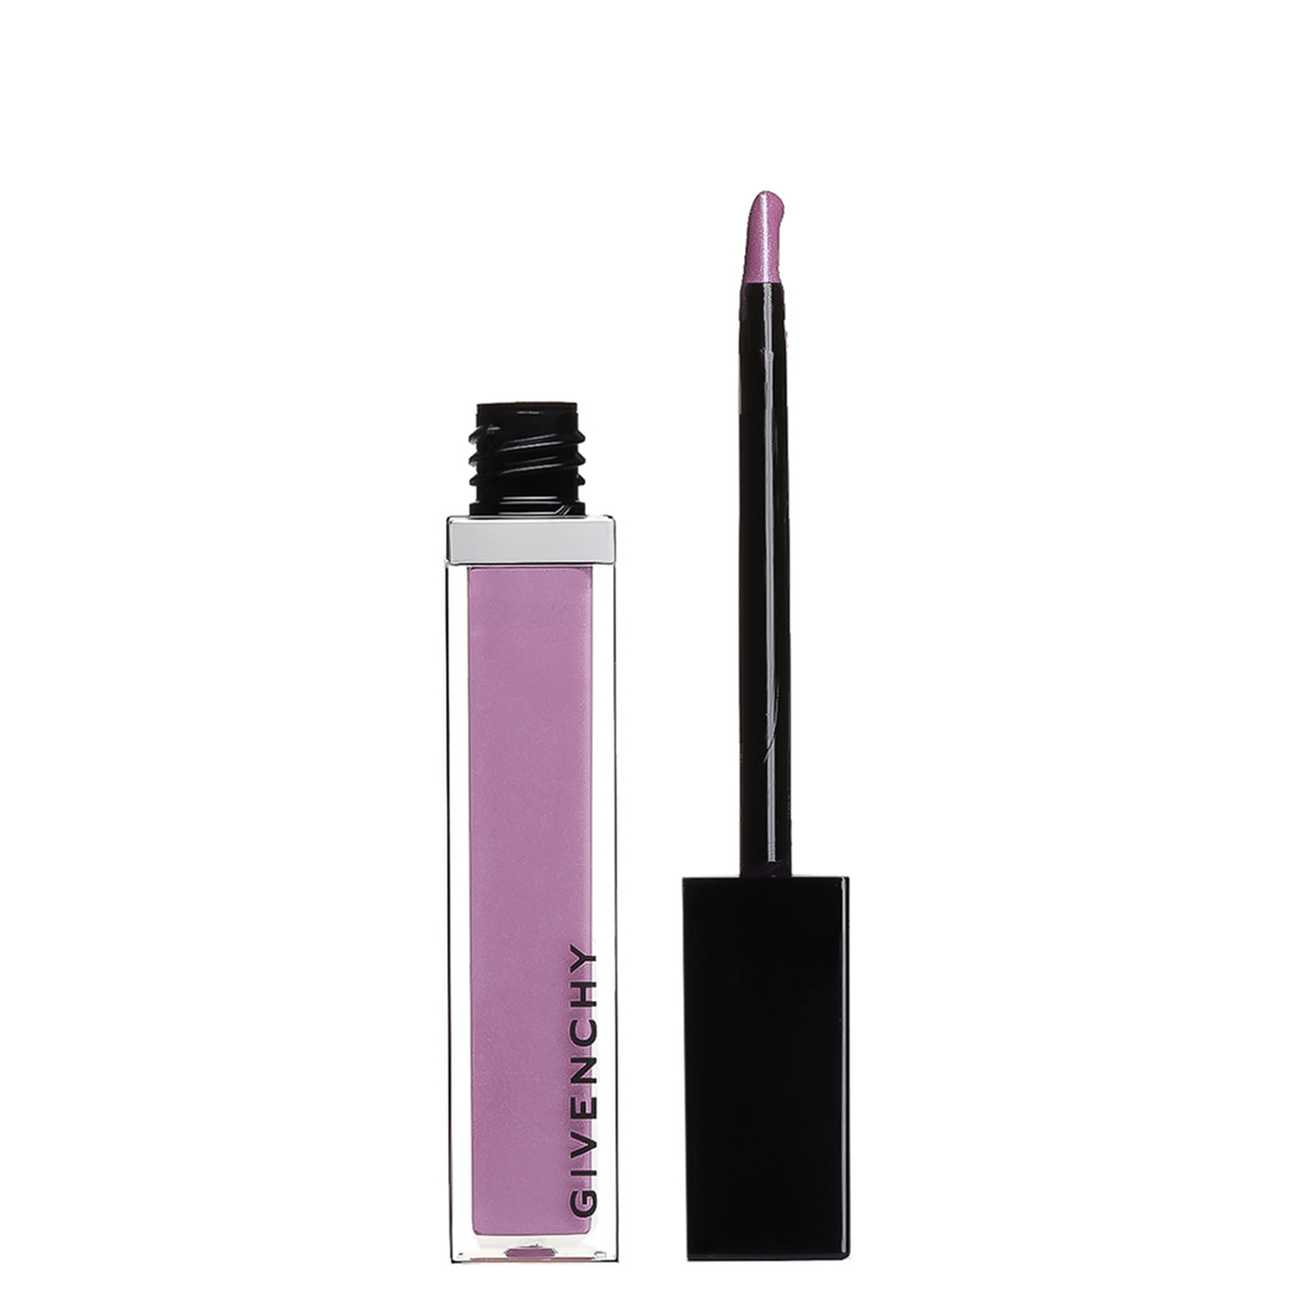 Gloss Interdit 6 Ml Lilac Confession 6 Givenchy imagine 2021 bestvalue.eu